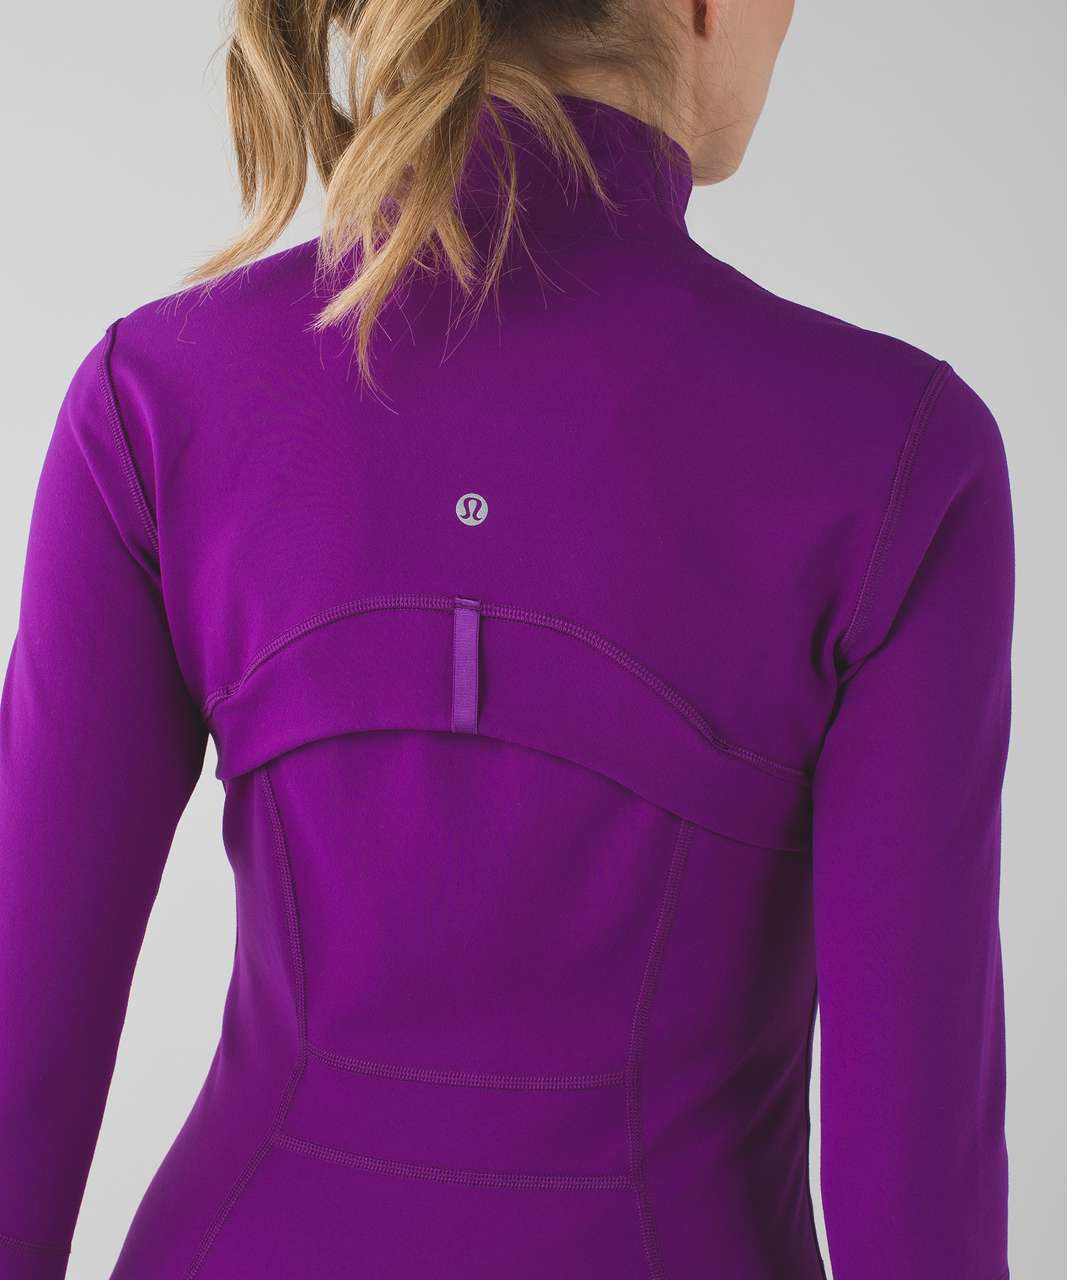 Lululemon Define Jacket - Tender Violet